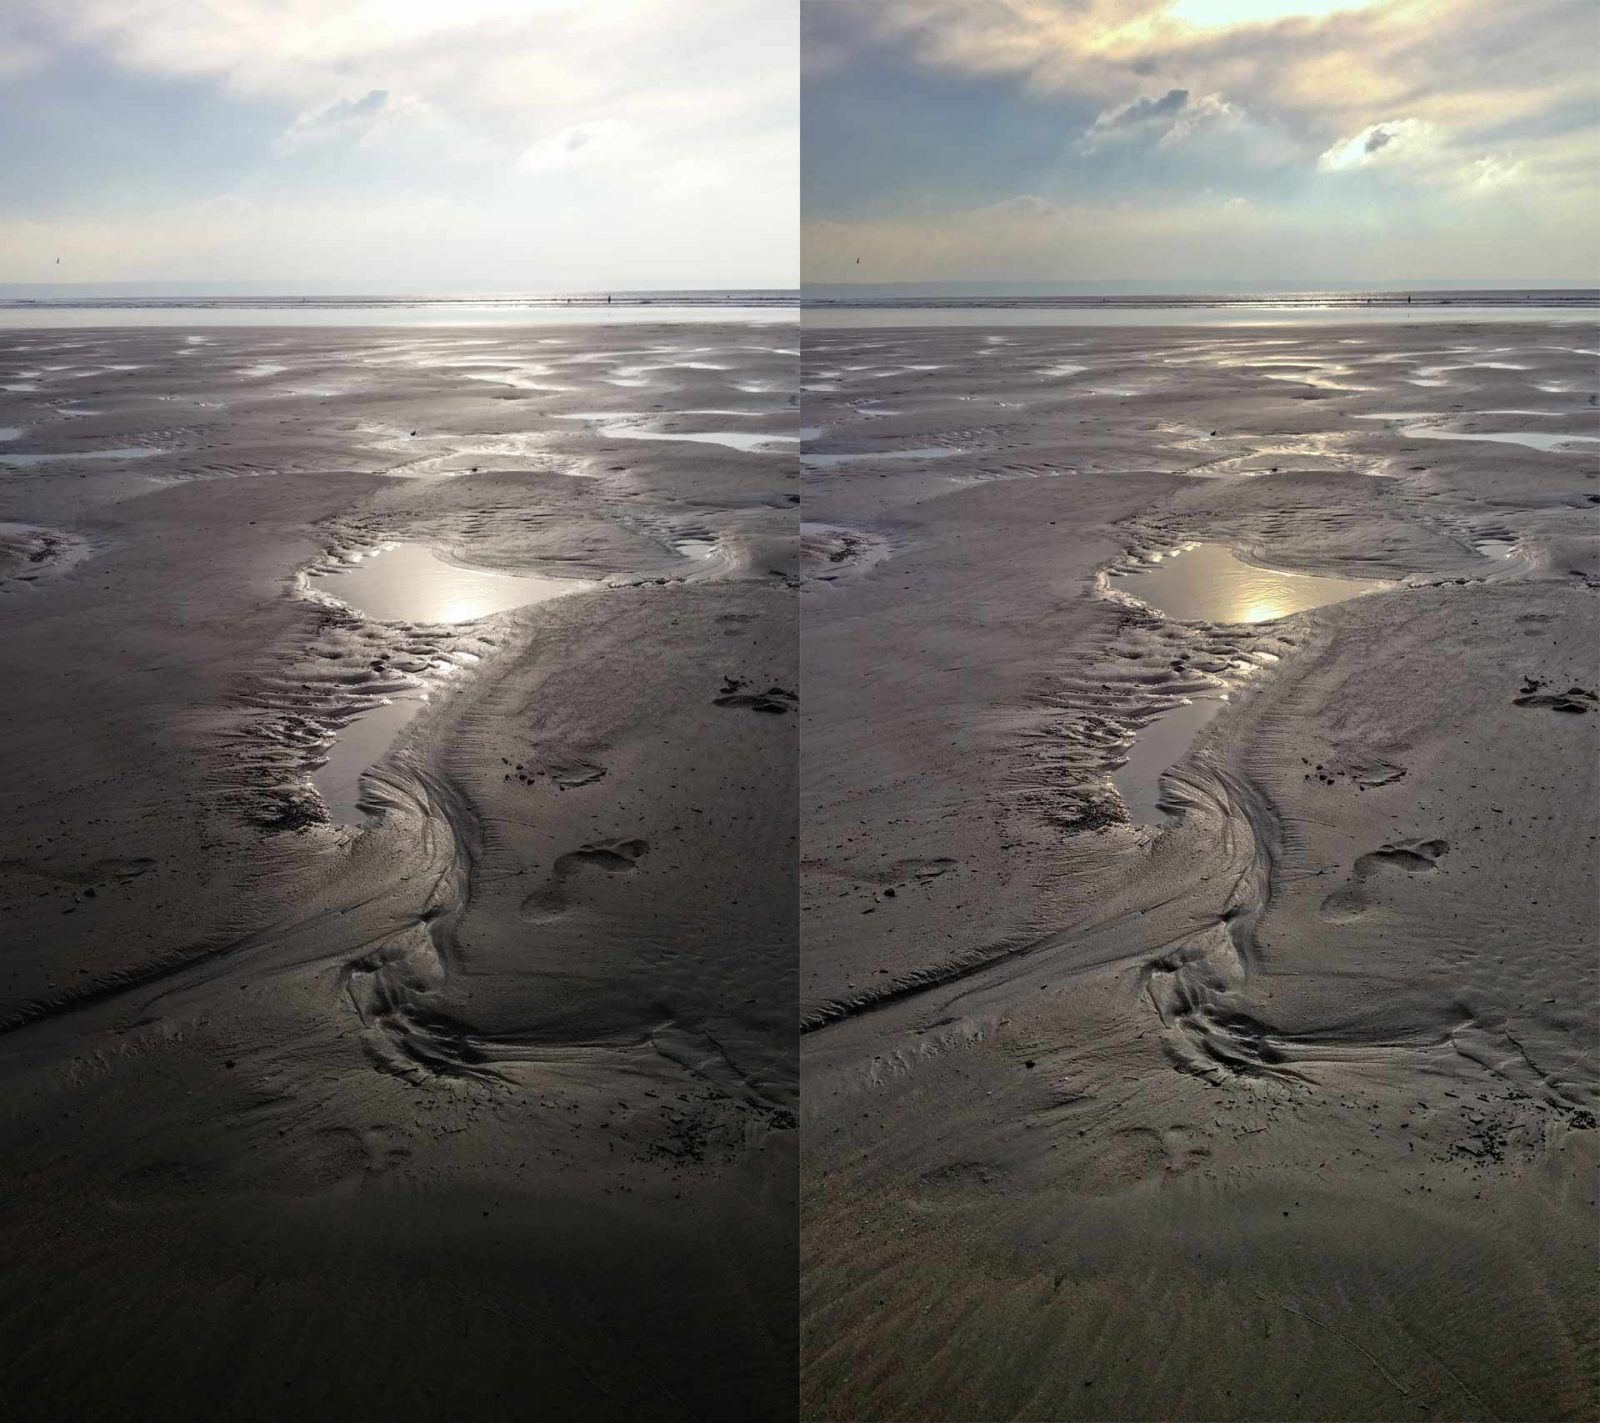 Getting the best from a camera phone at the beach. Mobile phone photography tips for days at the seaside. How to get better shots of the landscape on a cell phone. Read it on Falcondale Life blog. Edit the photo for the best results - here is how I did it.